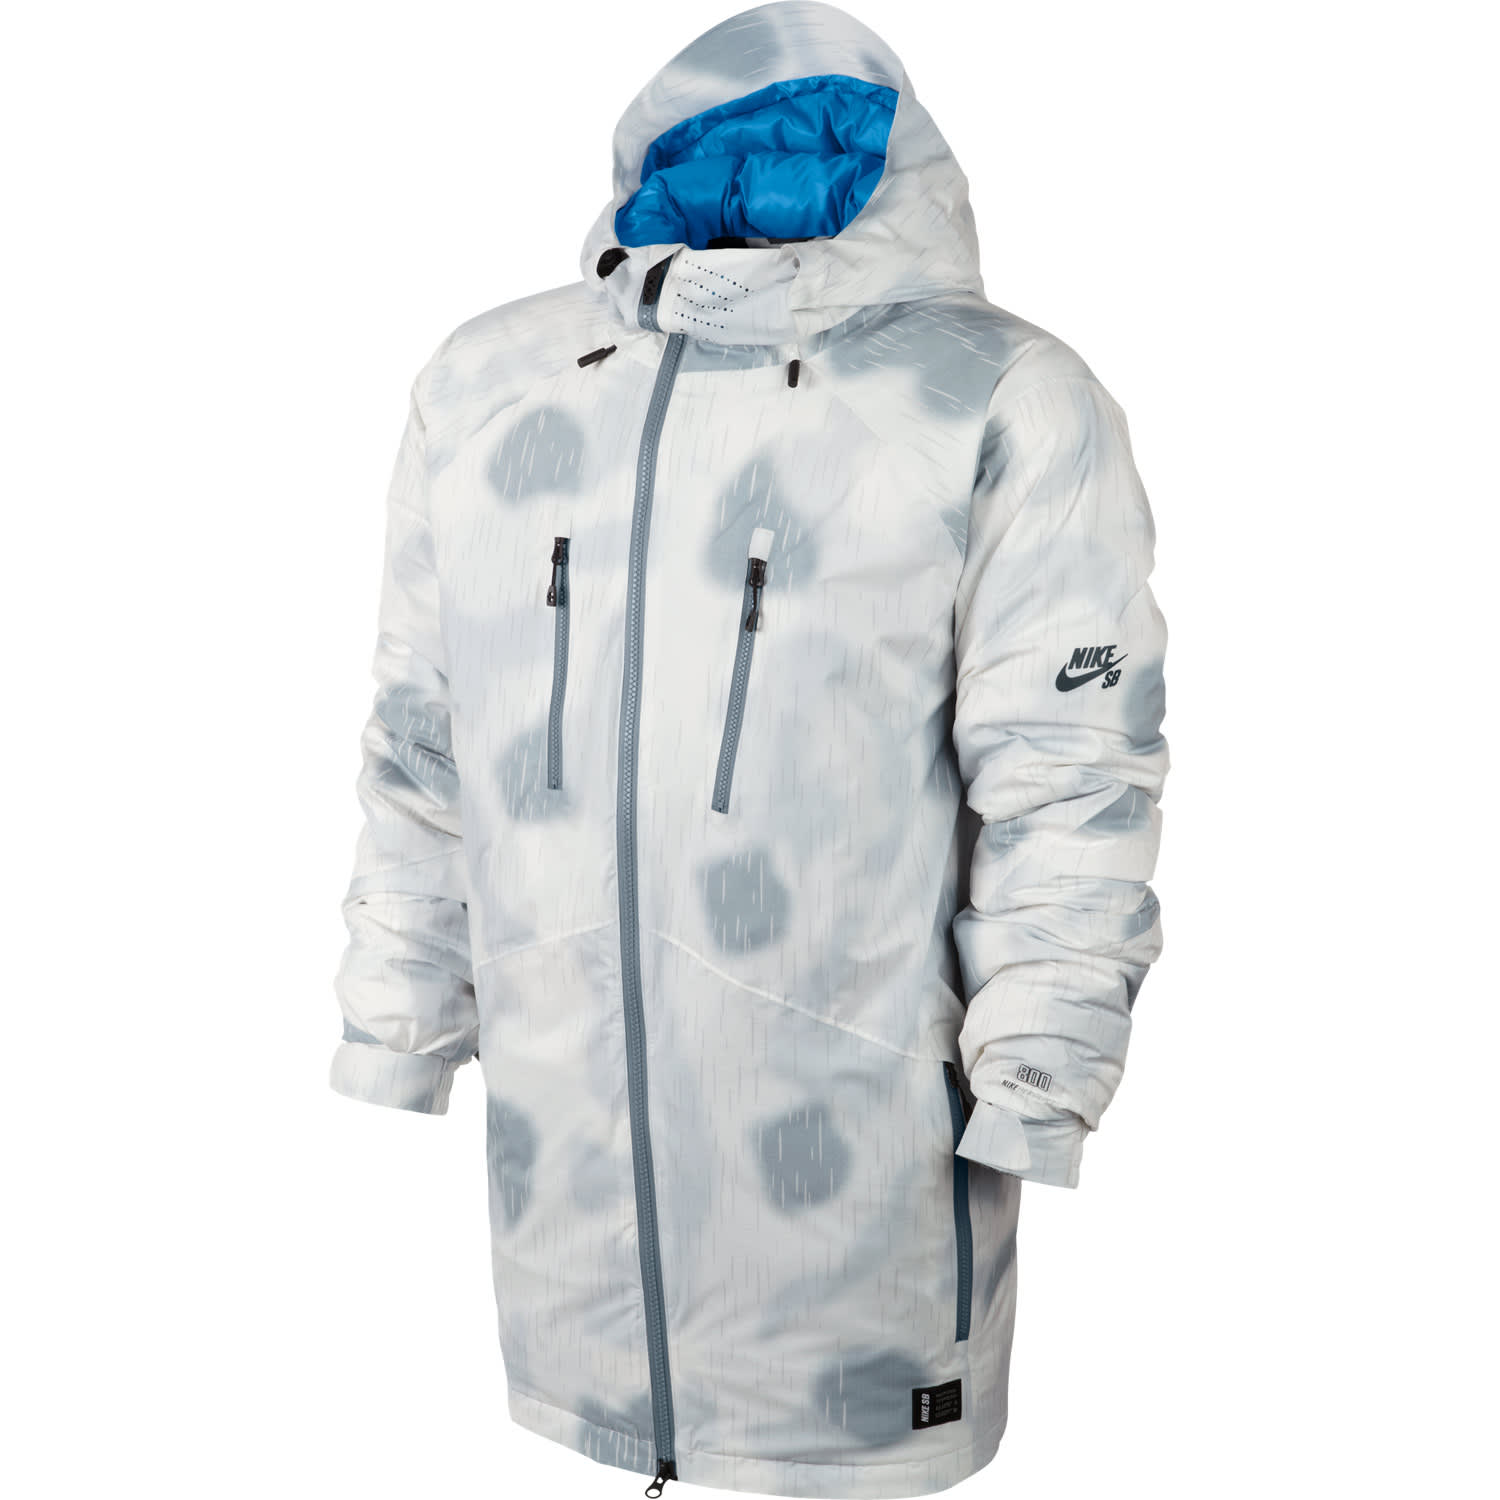 Nike Womens Snowboard Clothing